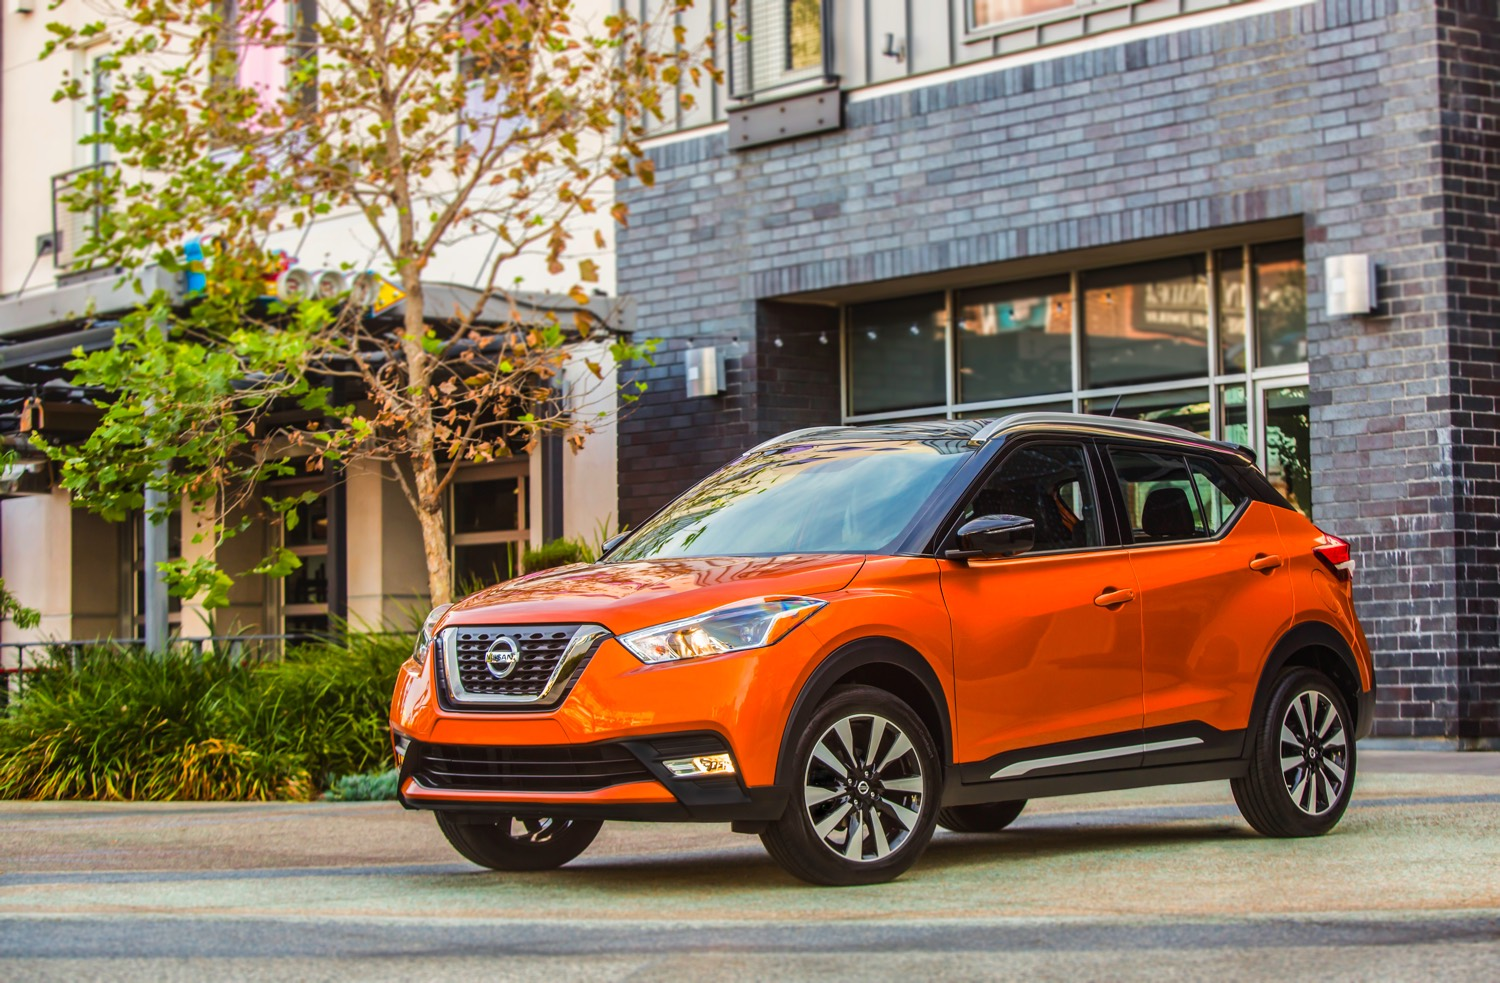 2018 Nissan KICKS__orange_3:4